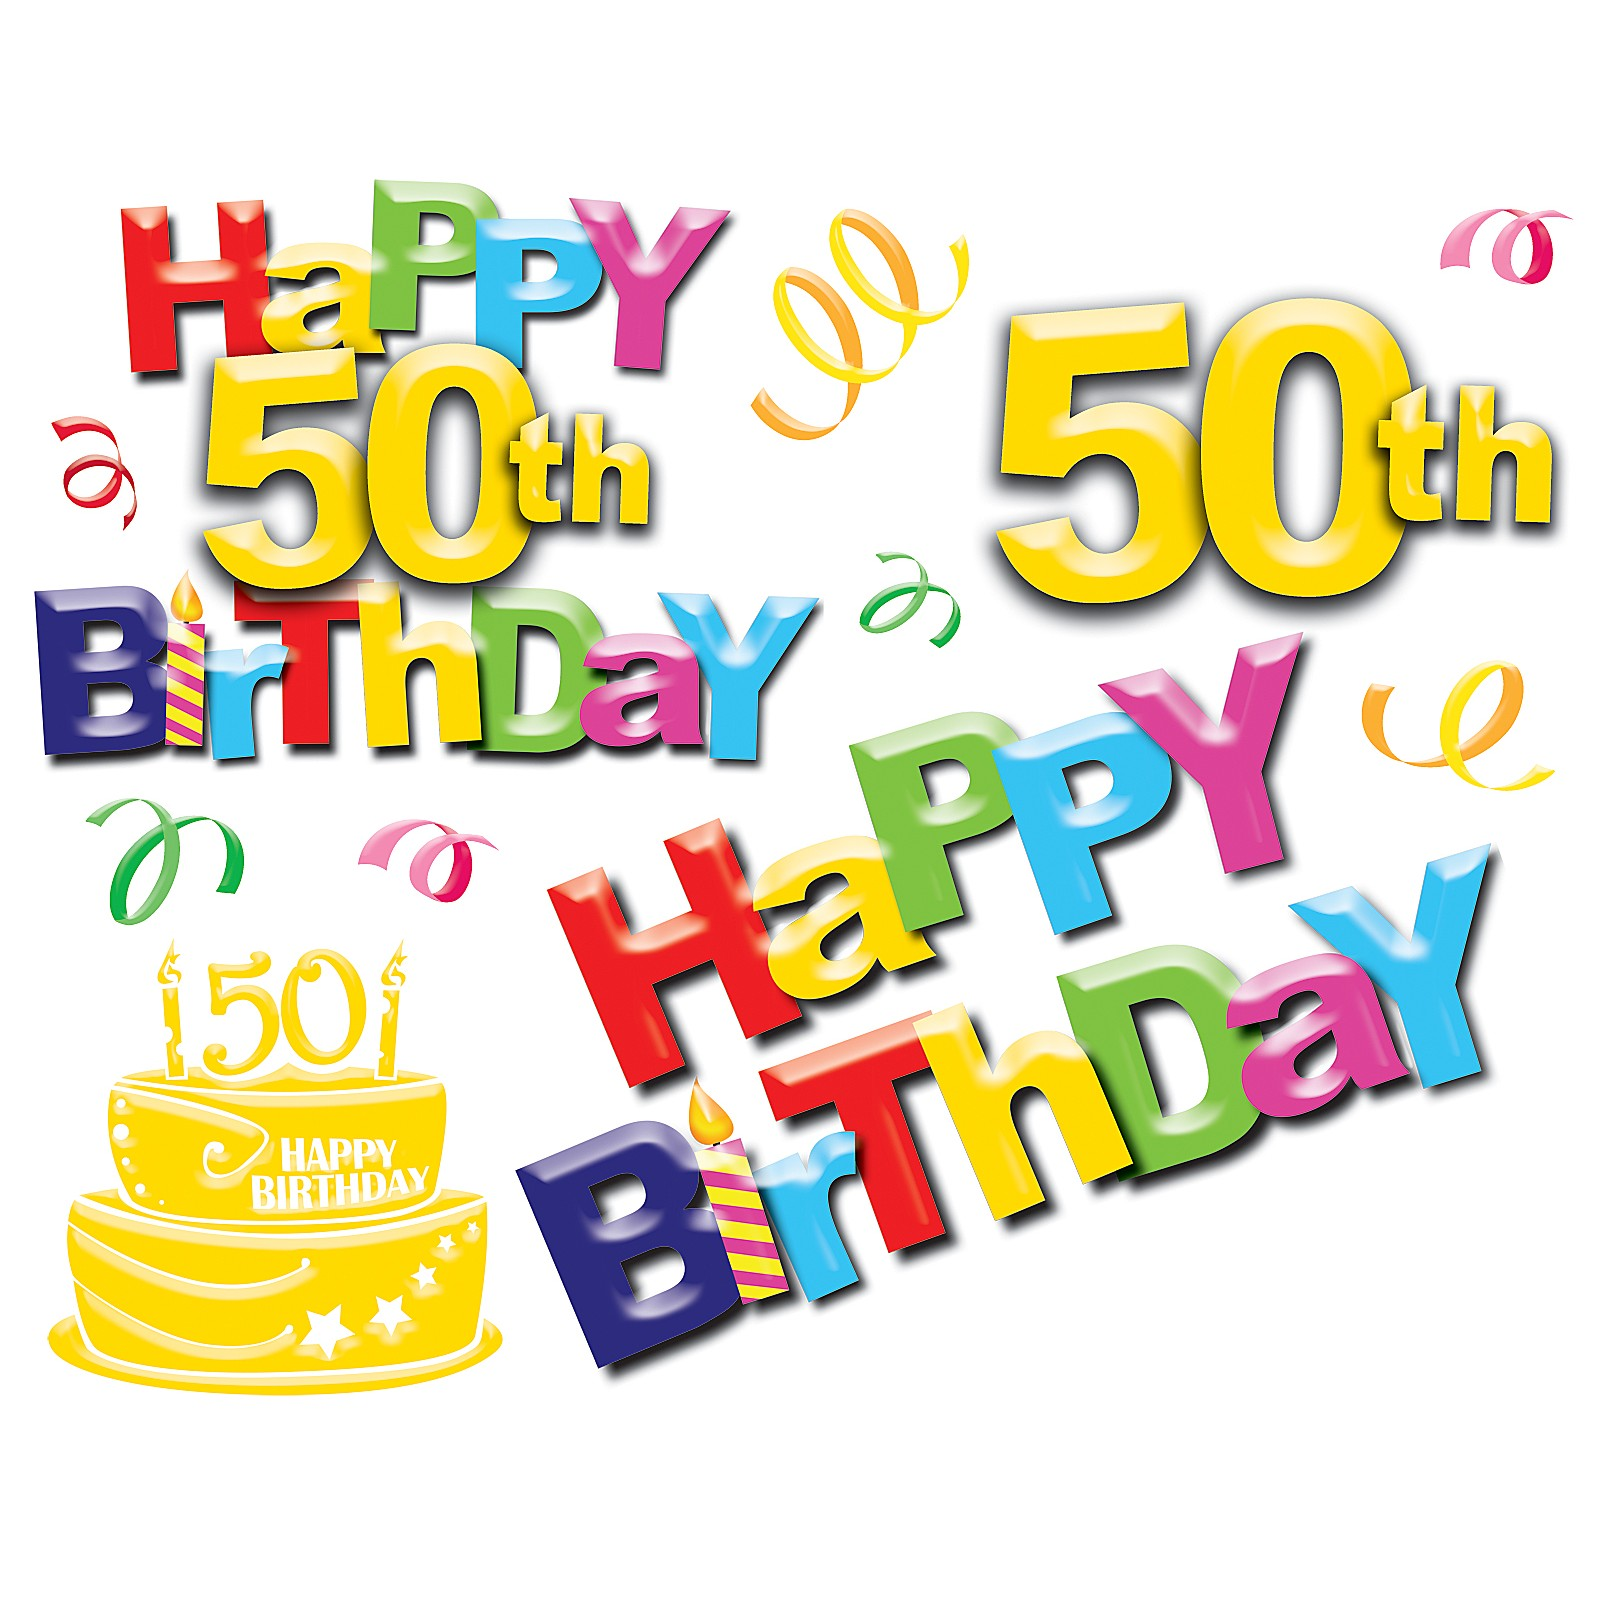 50th birthday cake clipart clipart black and white download Happy 50th Birthday Clipart - Clipart Kid clipart black and white download